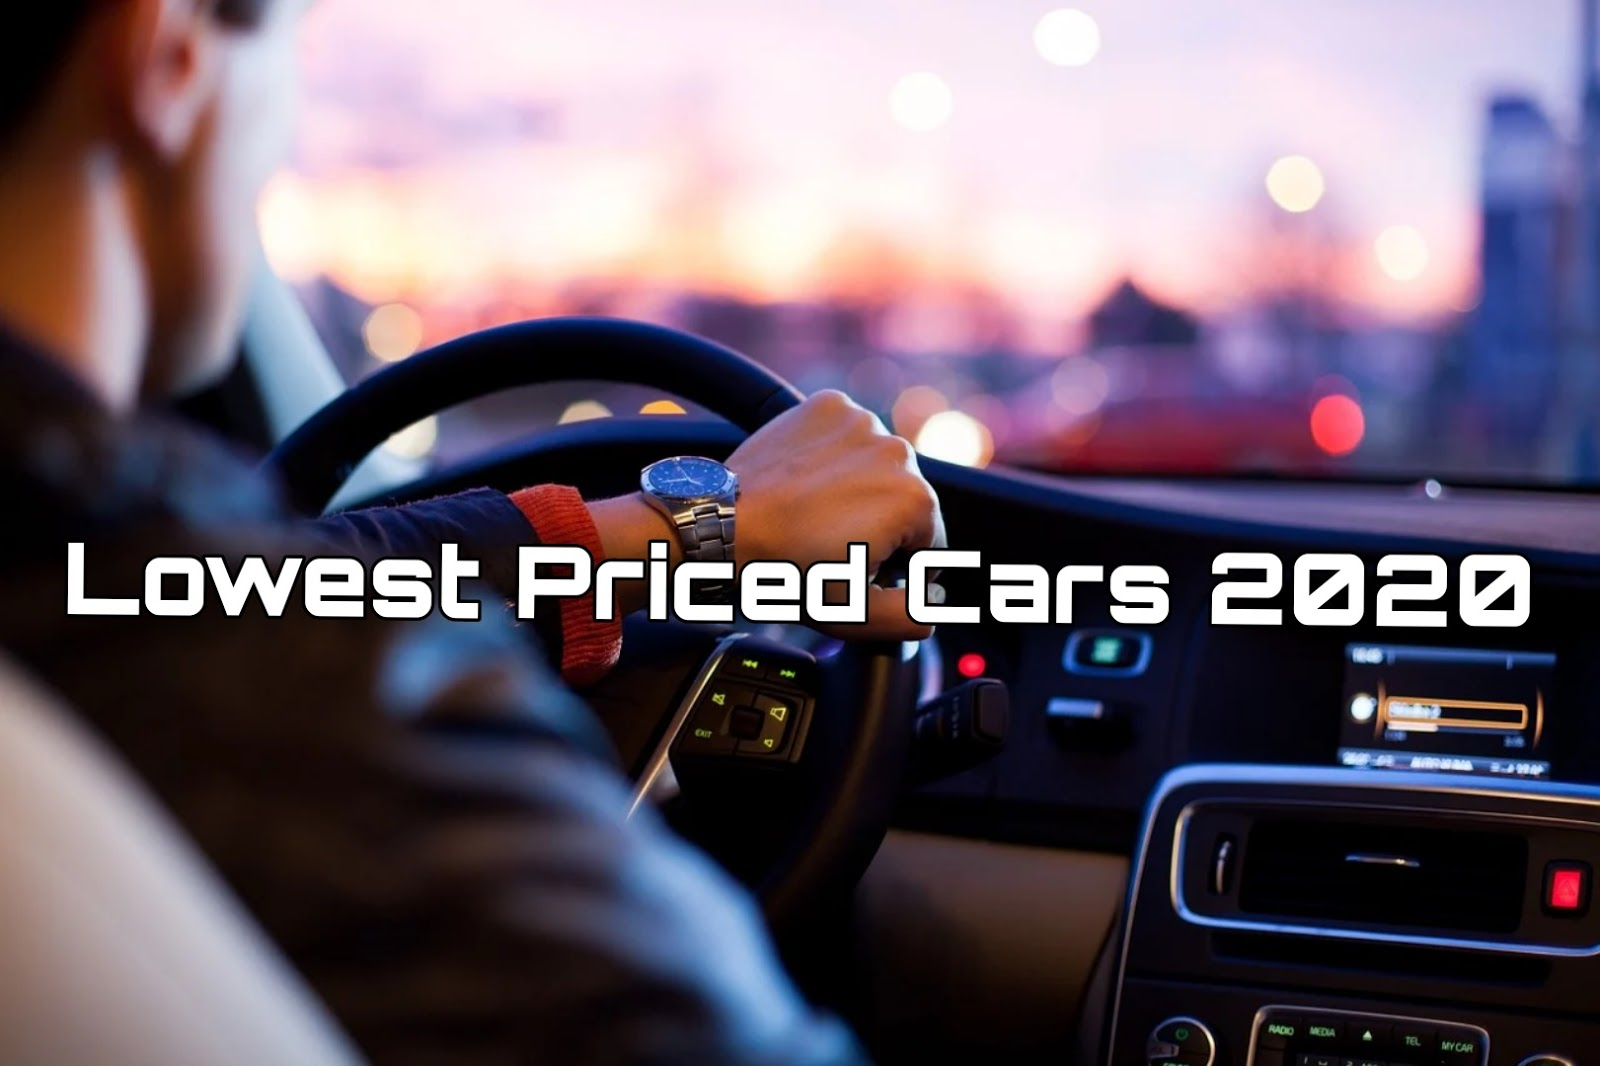 Lowest Priced Cars In India To Buy In 2020?